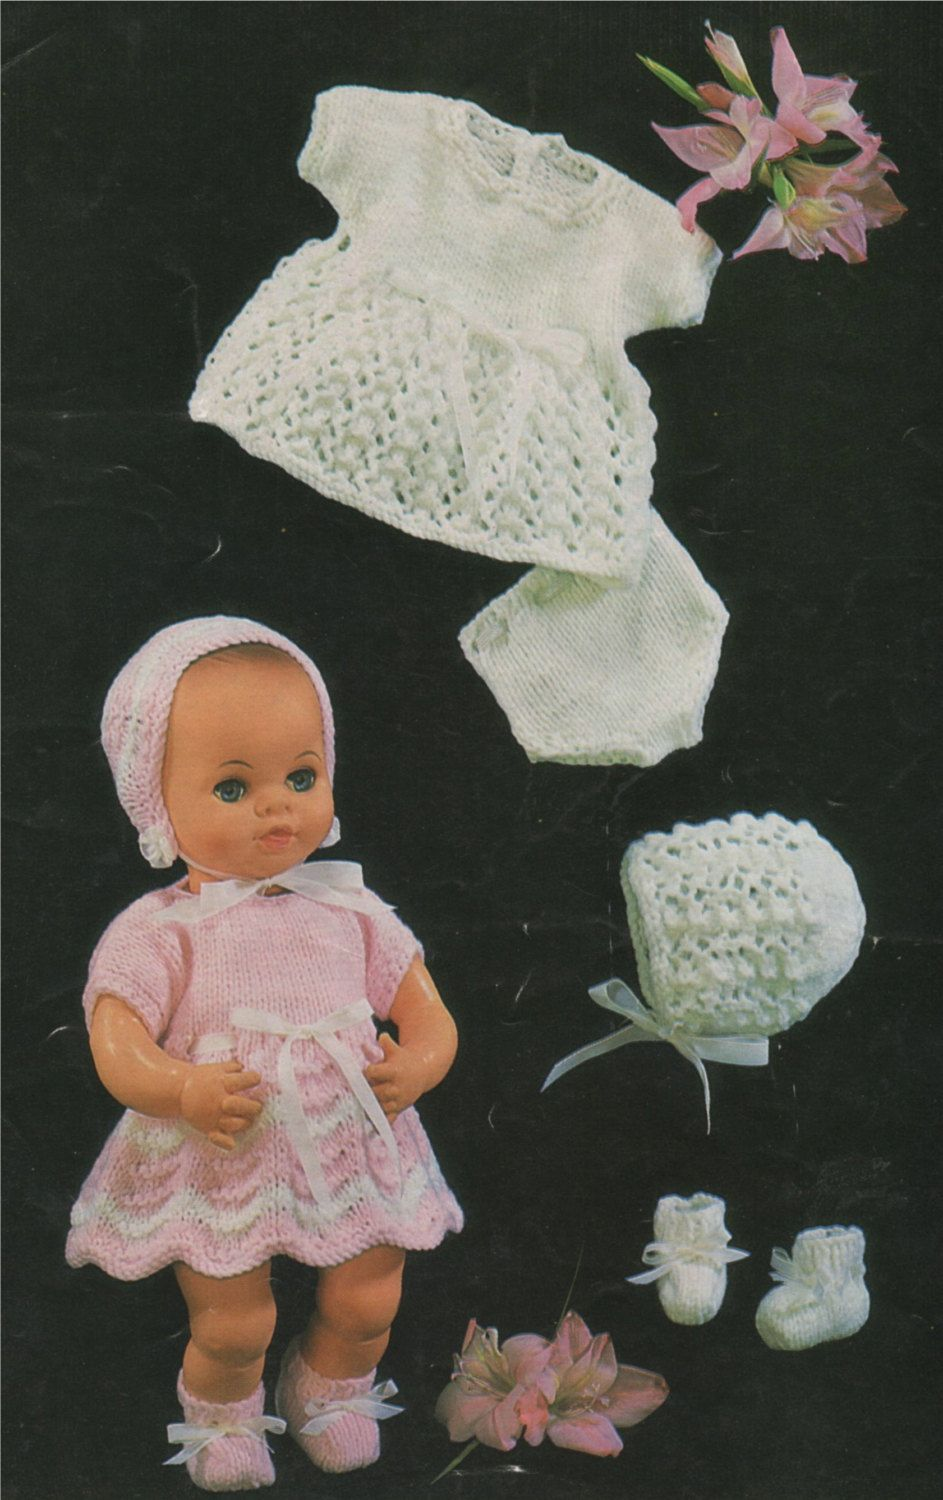 Dolls Clothes Knitting Pattern Pdf For 12 Inch Baby Doll Pedigree Dolls Baby Reborn Dolls Vintage Knitting Patterns For Dolls Download Baby Doll Clothes Patterns Knitting Dolls Clothes Knitting Patterns Toys